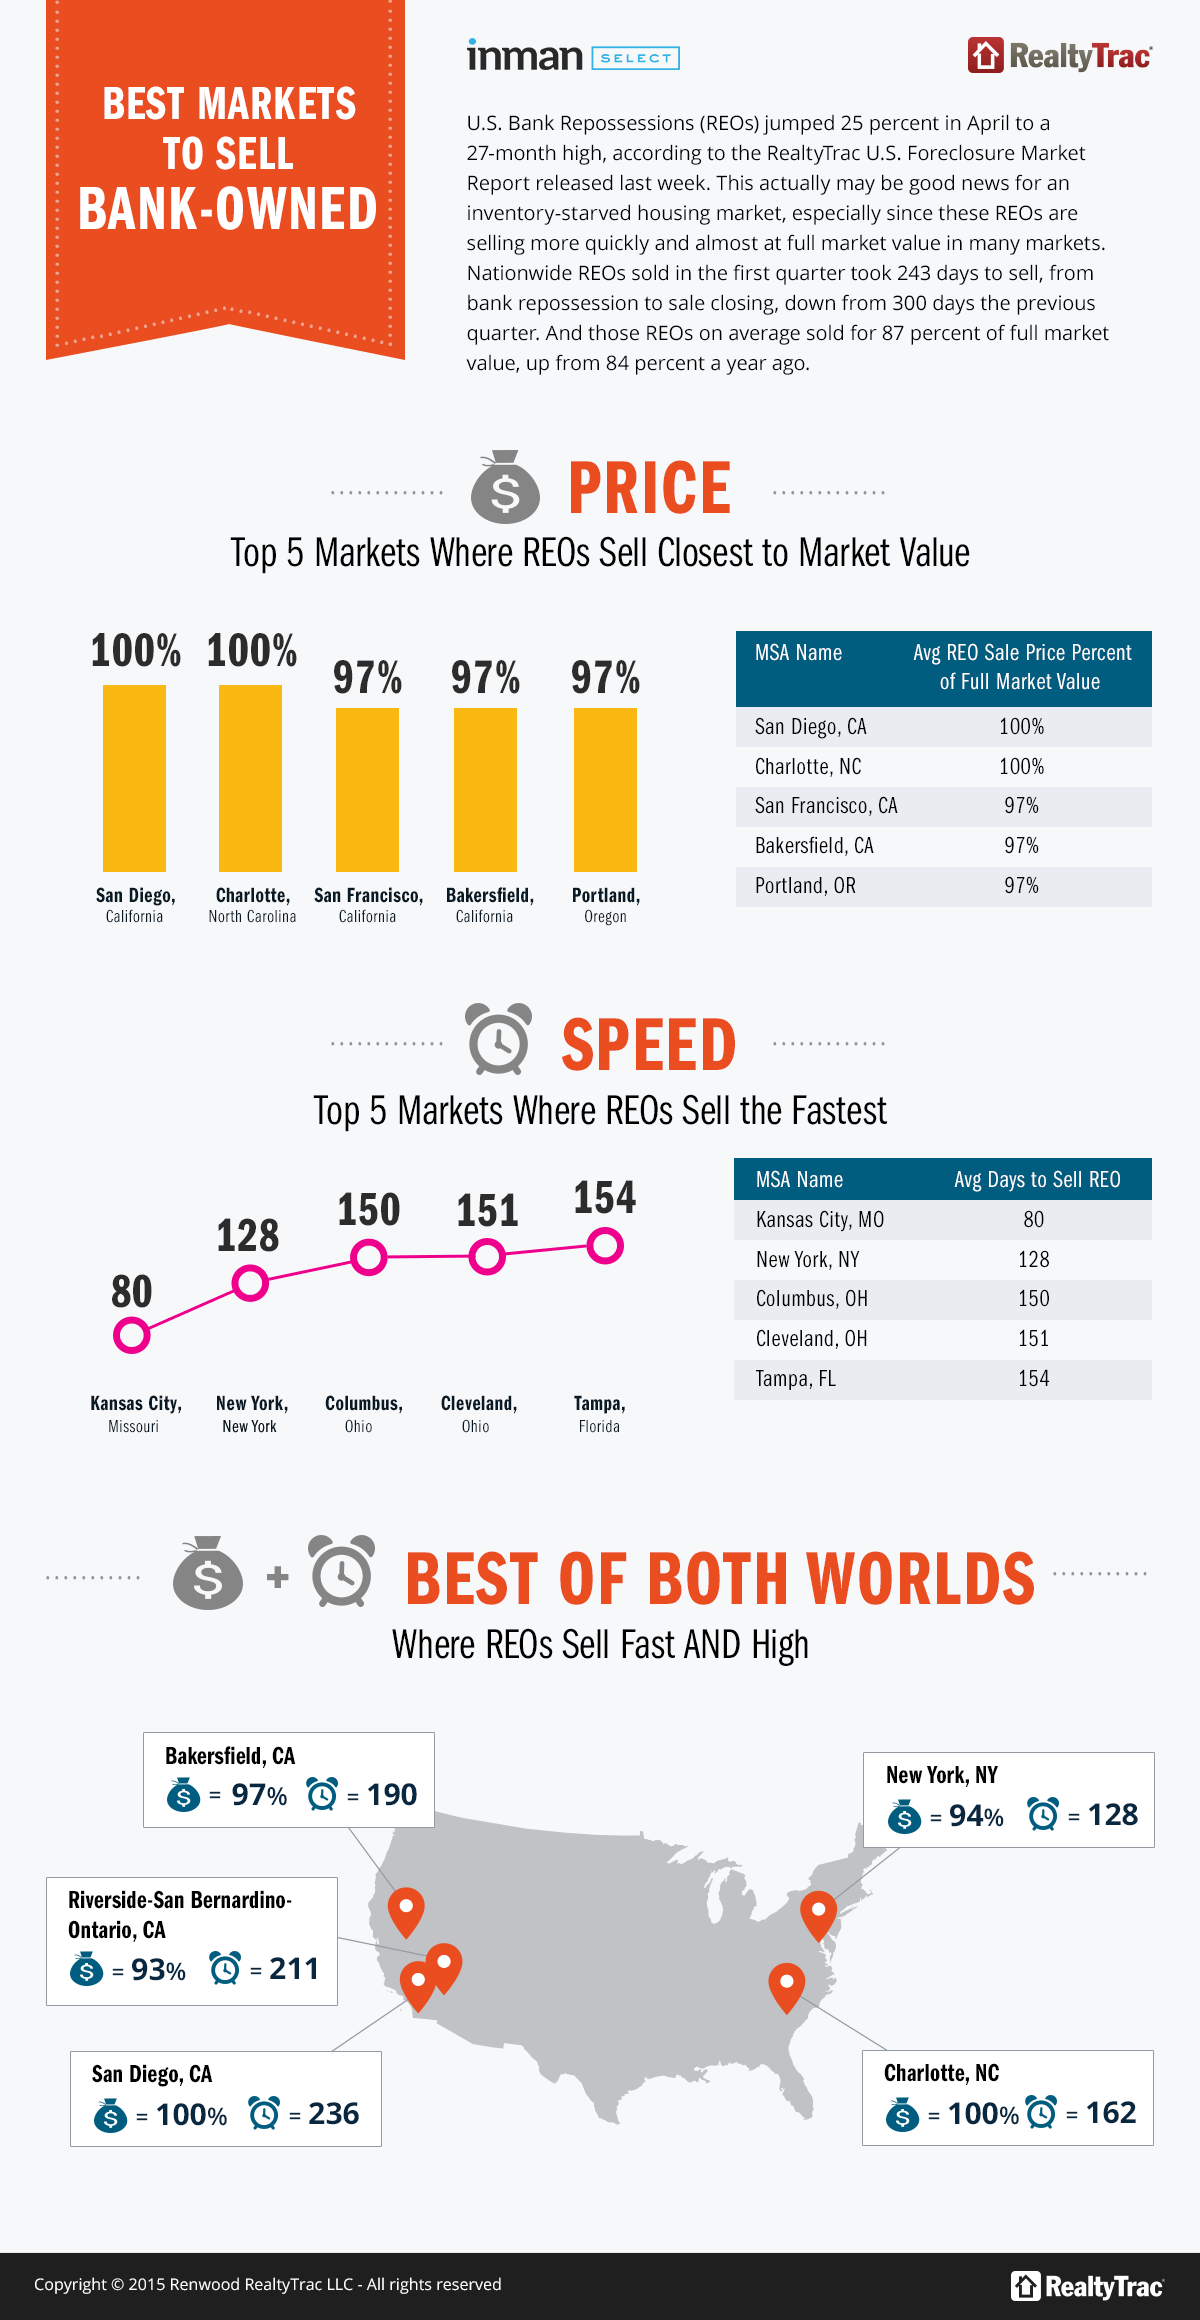 Best_Markets_Sell_Bank_Owned_infographic-large